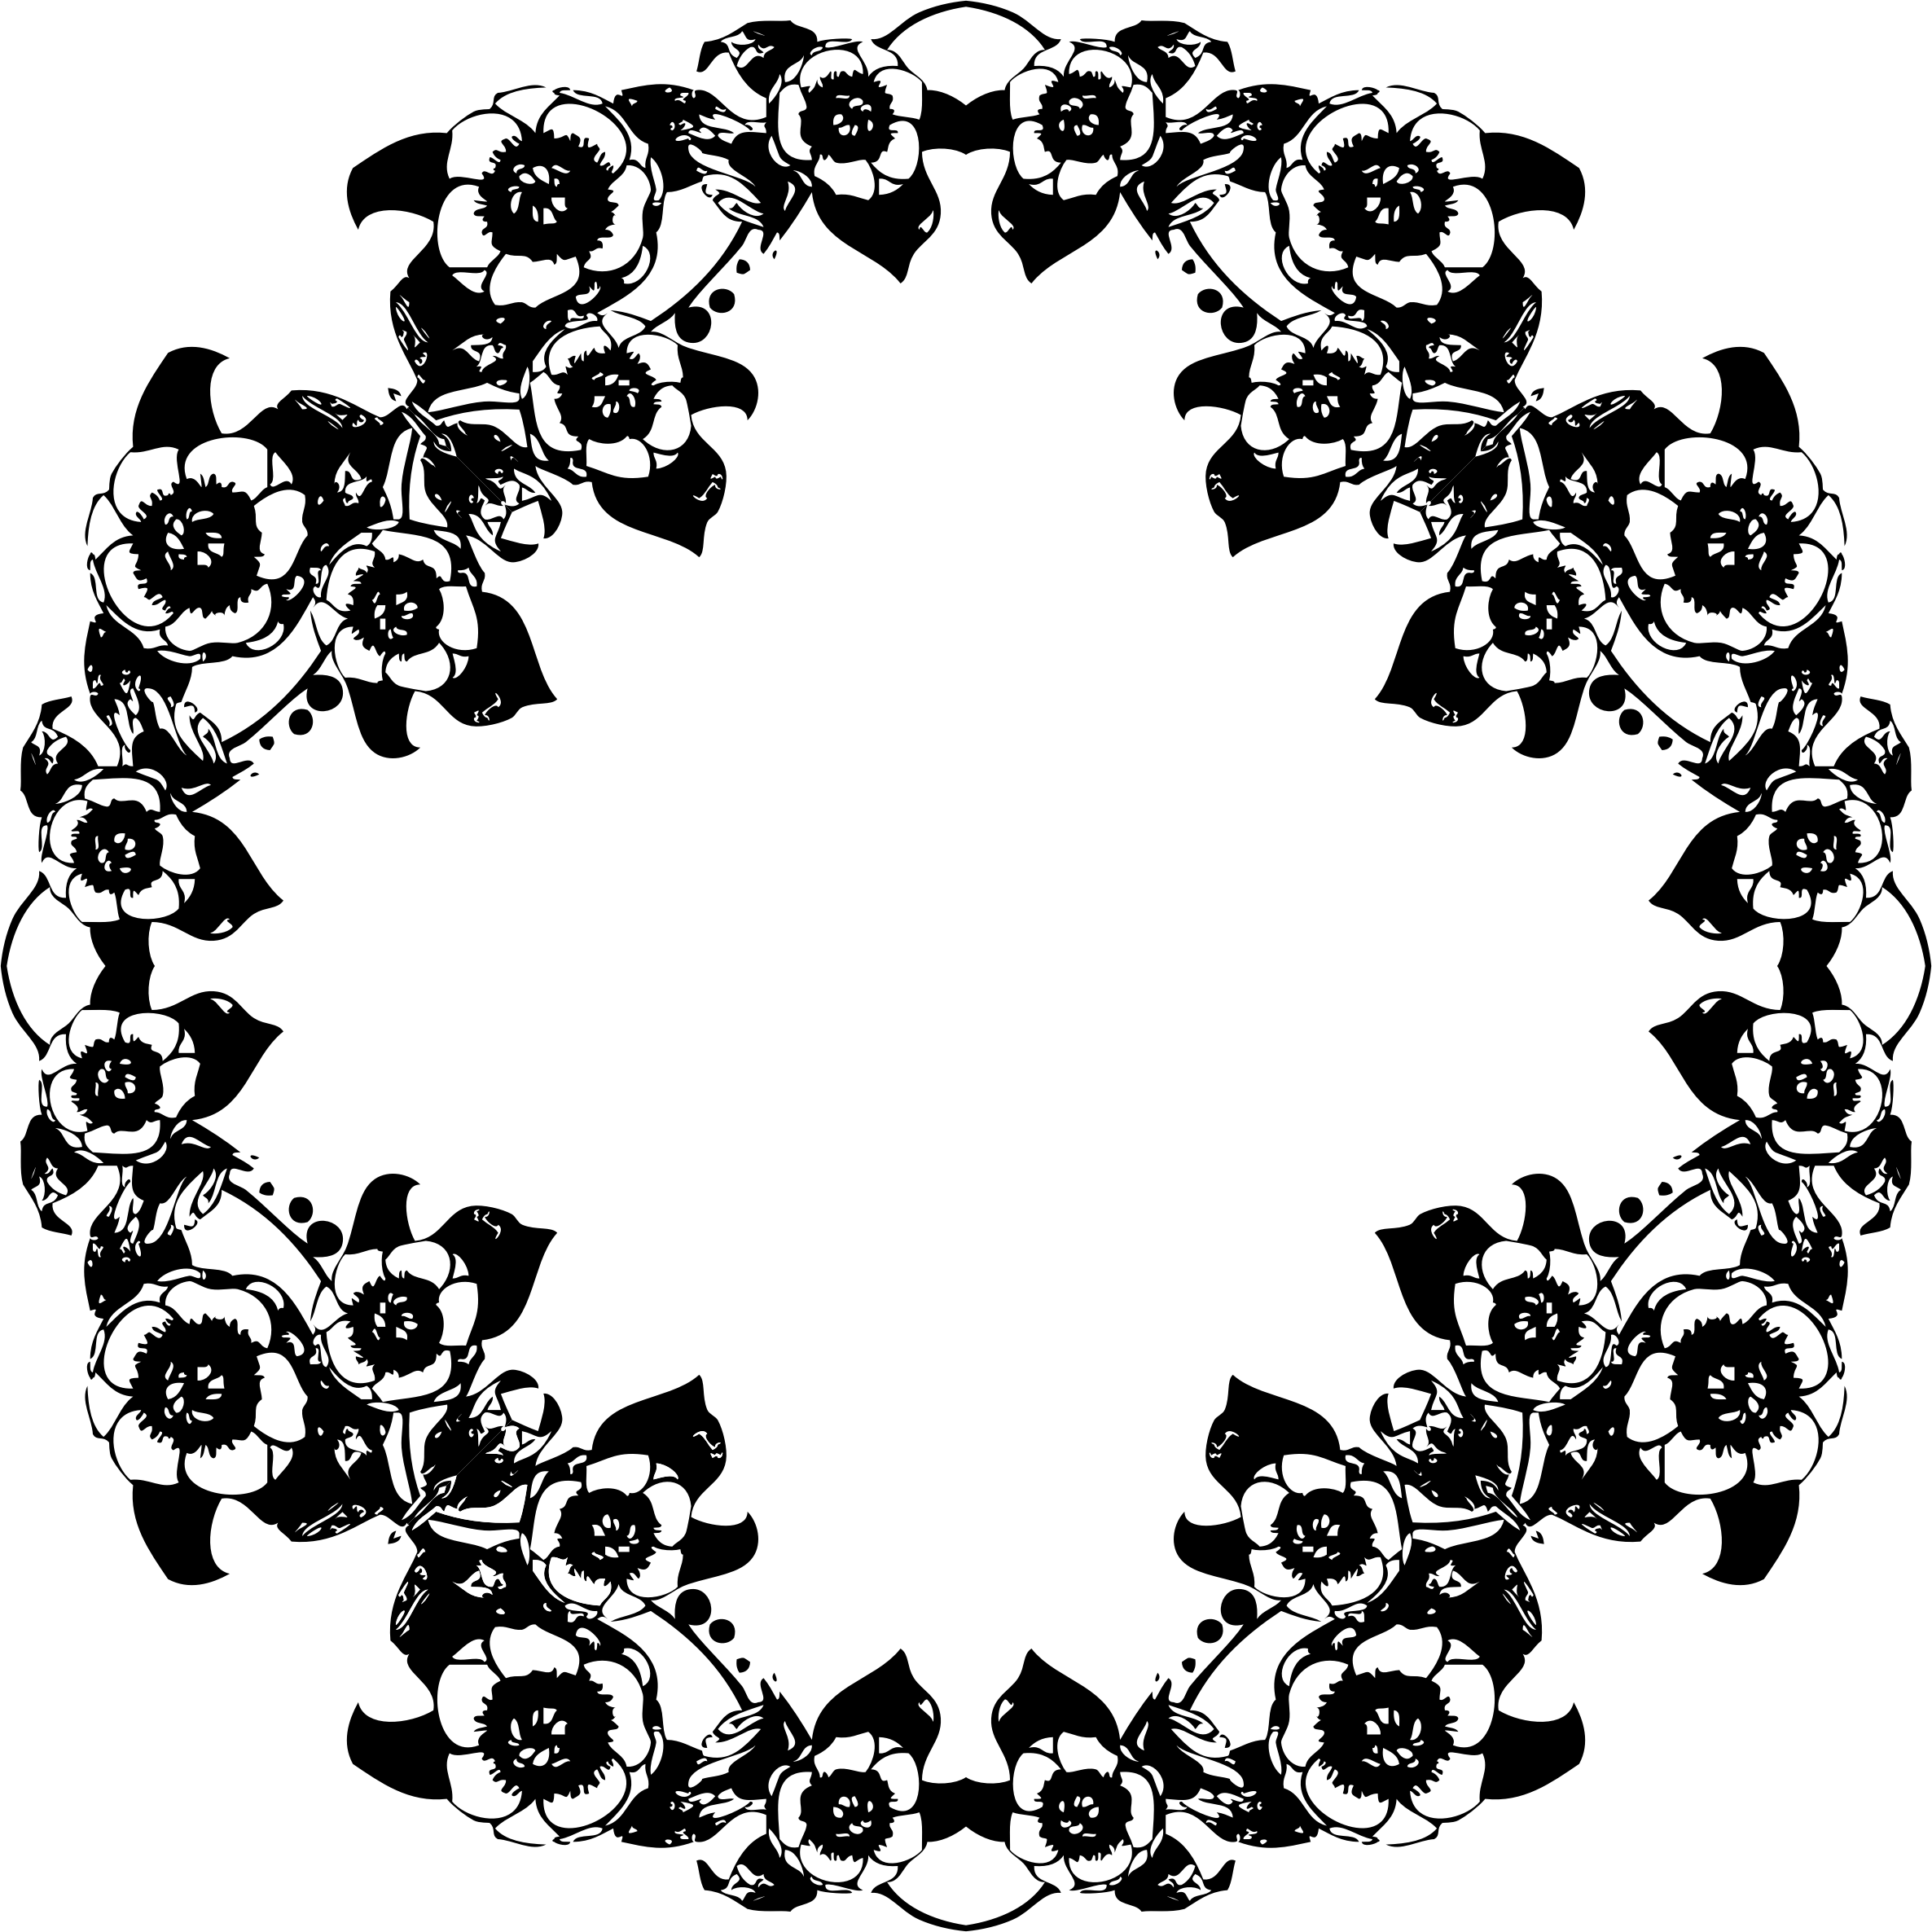 Black flower design png images galleries with a bite - Any design using black and white ...